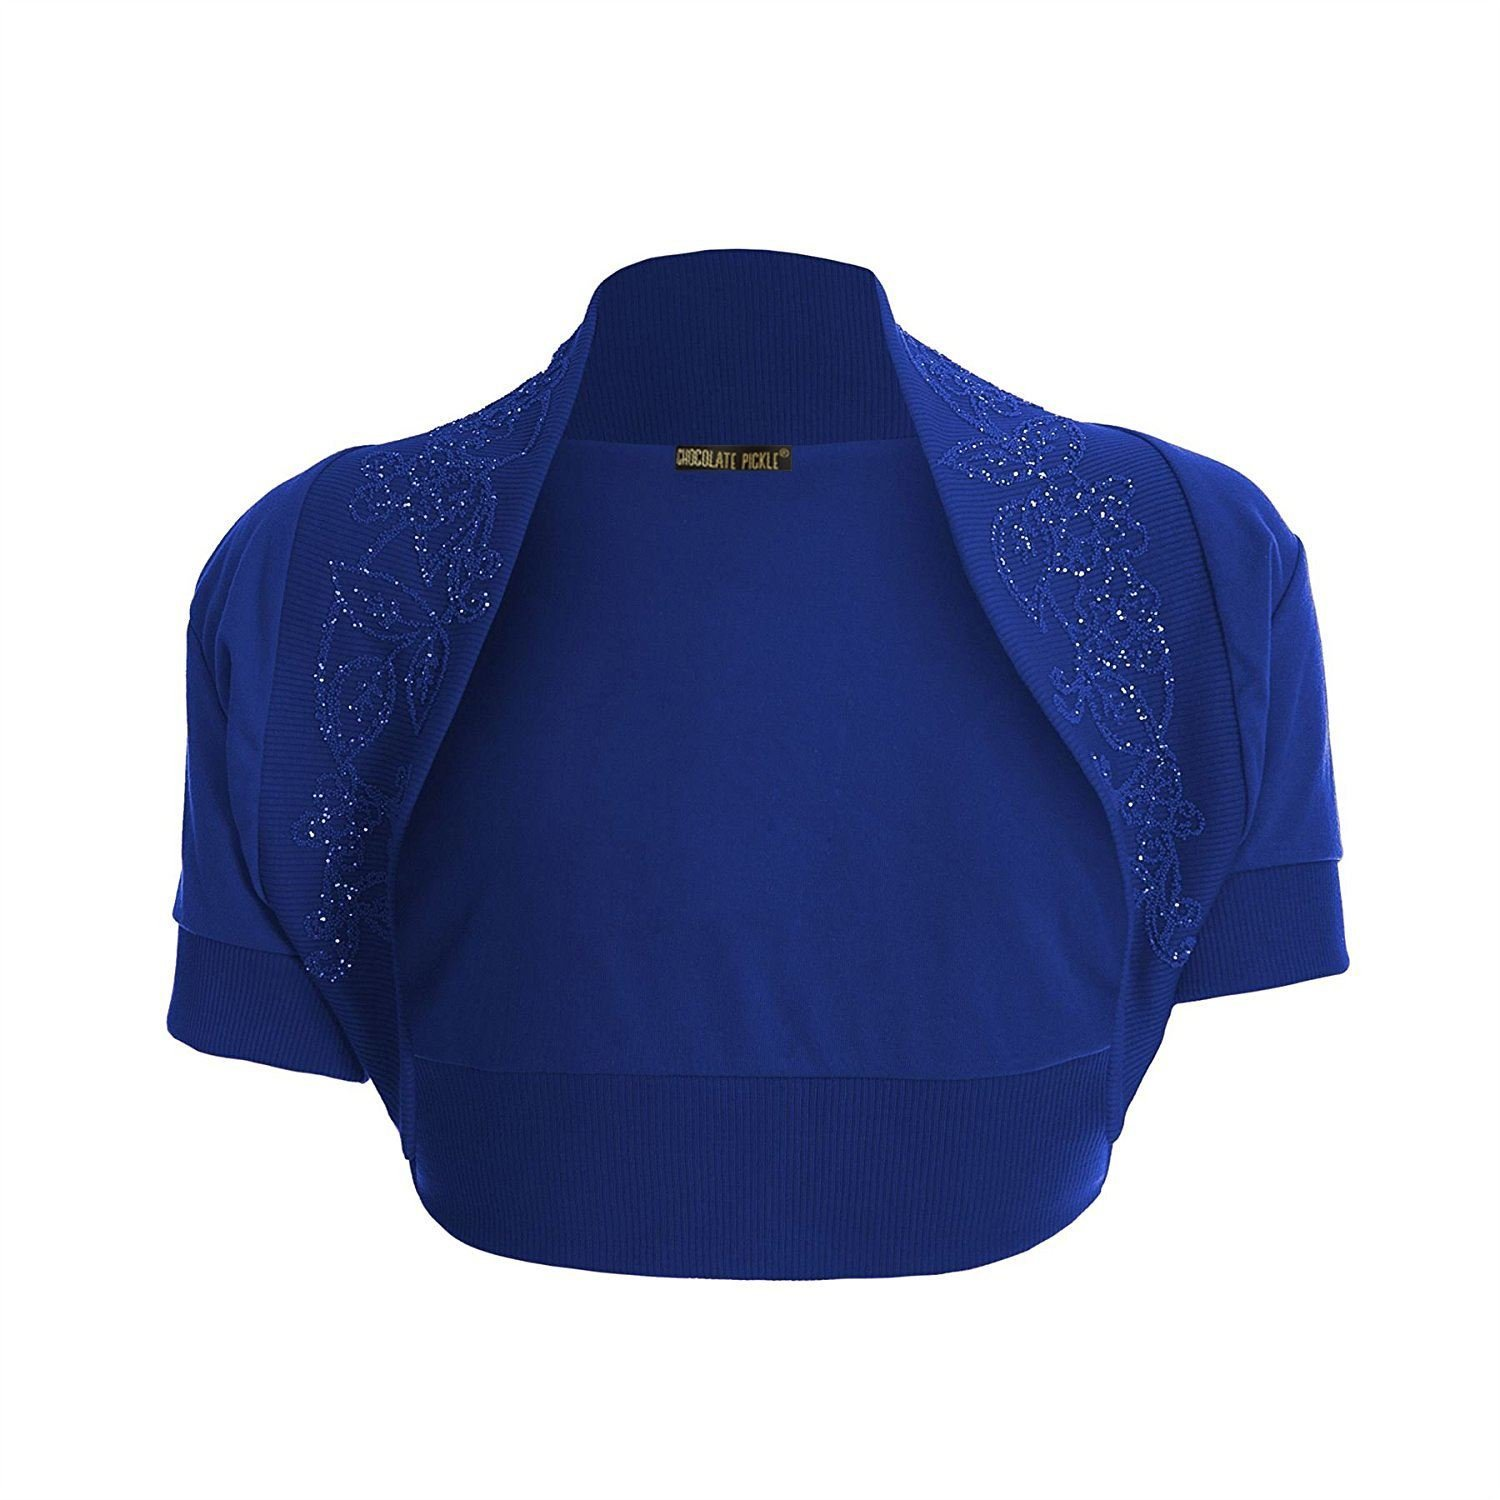 0da202b6011d Chocolate Pickle New ladies Short Sleeve Cropped Royal Blue Sequin Bolero  Shrug Cardigan Top S-